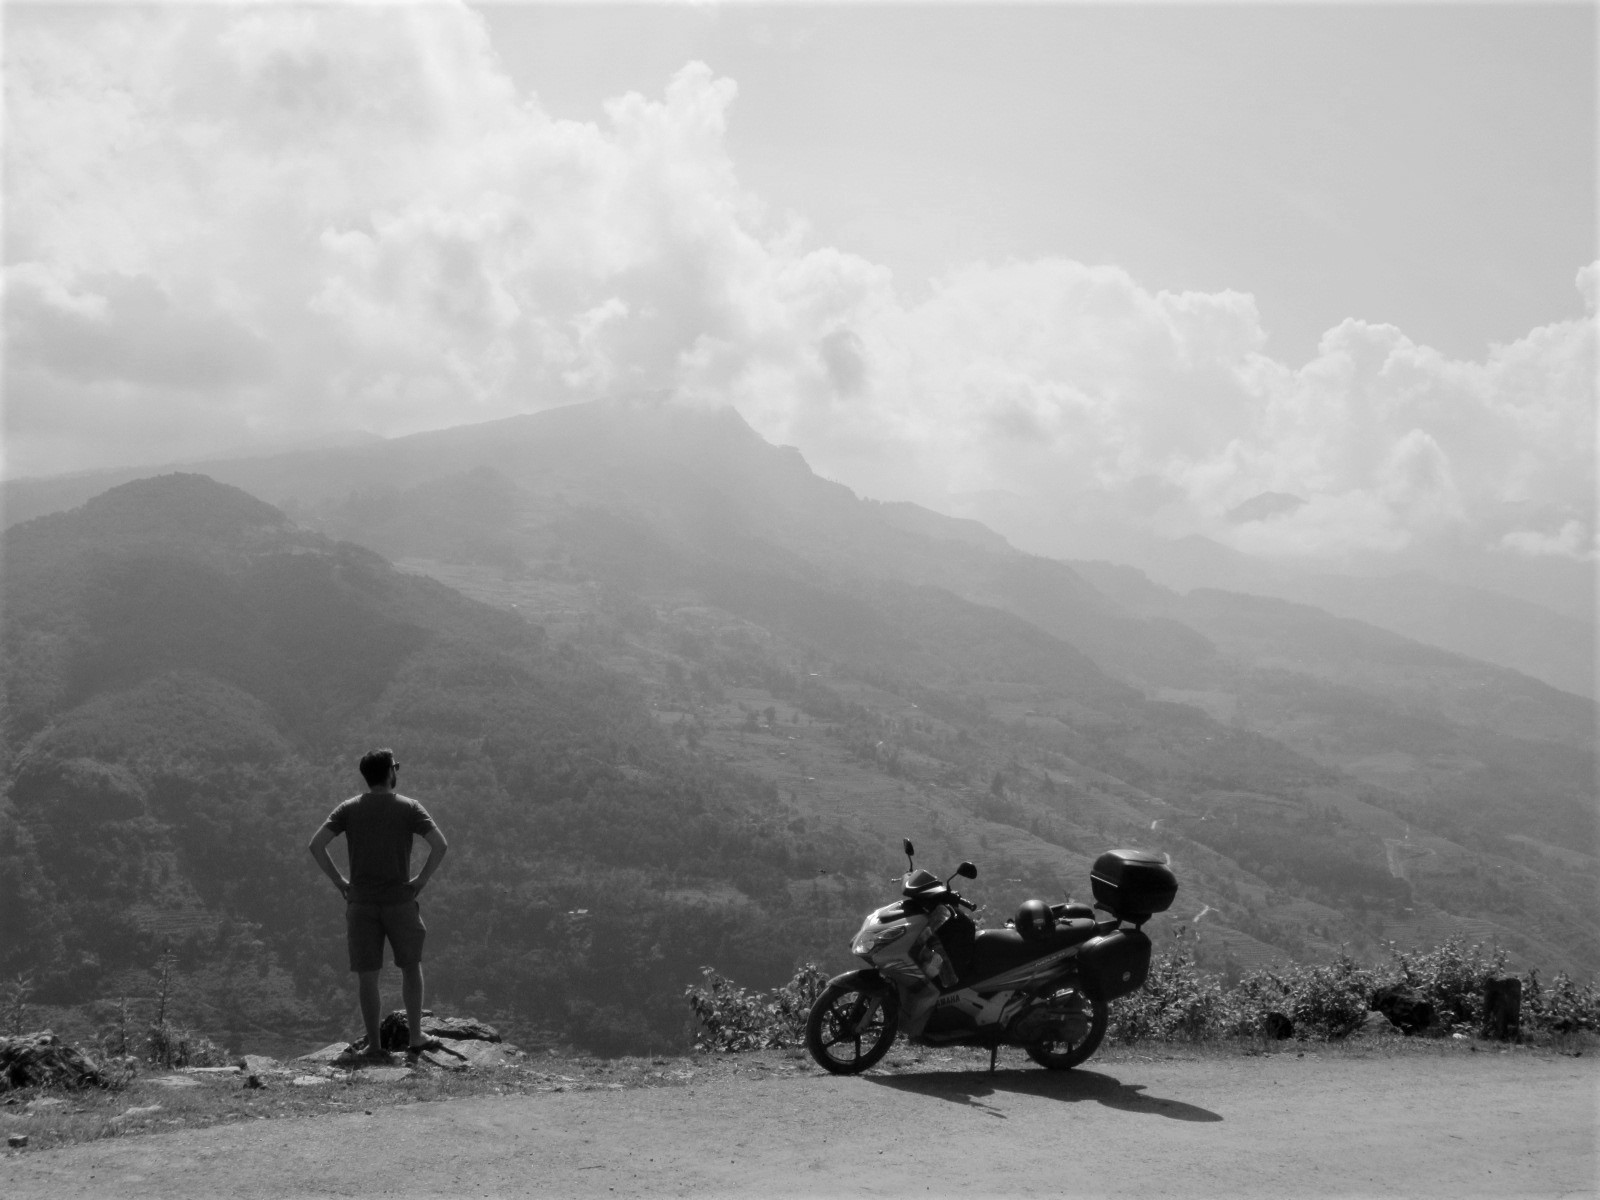 Gazing across the valley outside Xin Man on the Borders & Back-Roads Loop, northern Vietnam